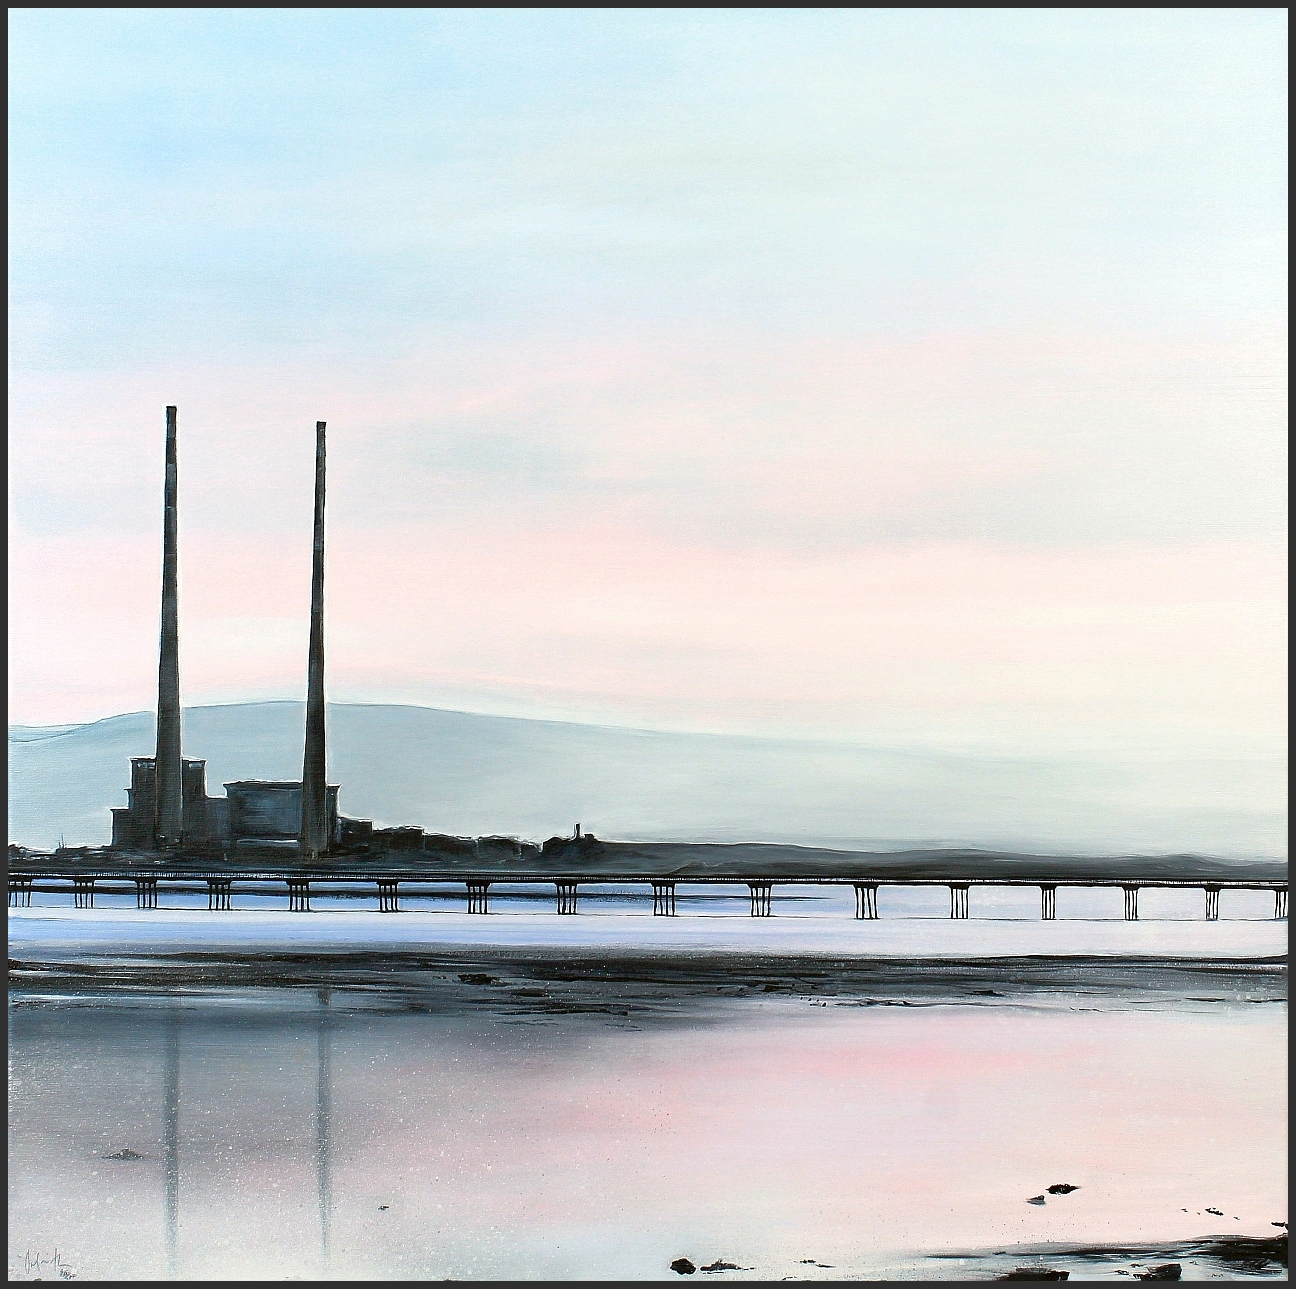 Poolbeg Towers and the Bull Wall wooden bridge by Orfhlaith Egan